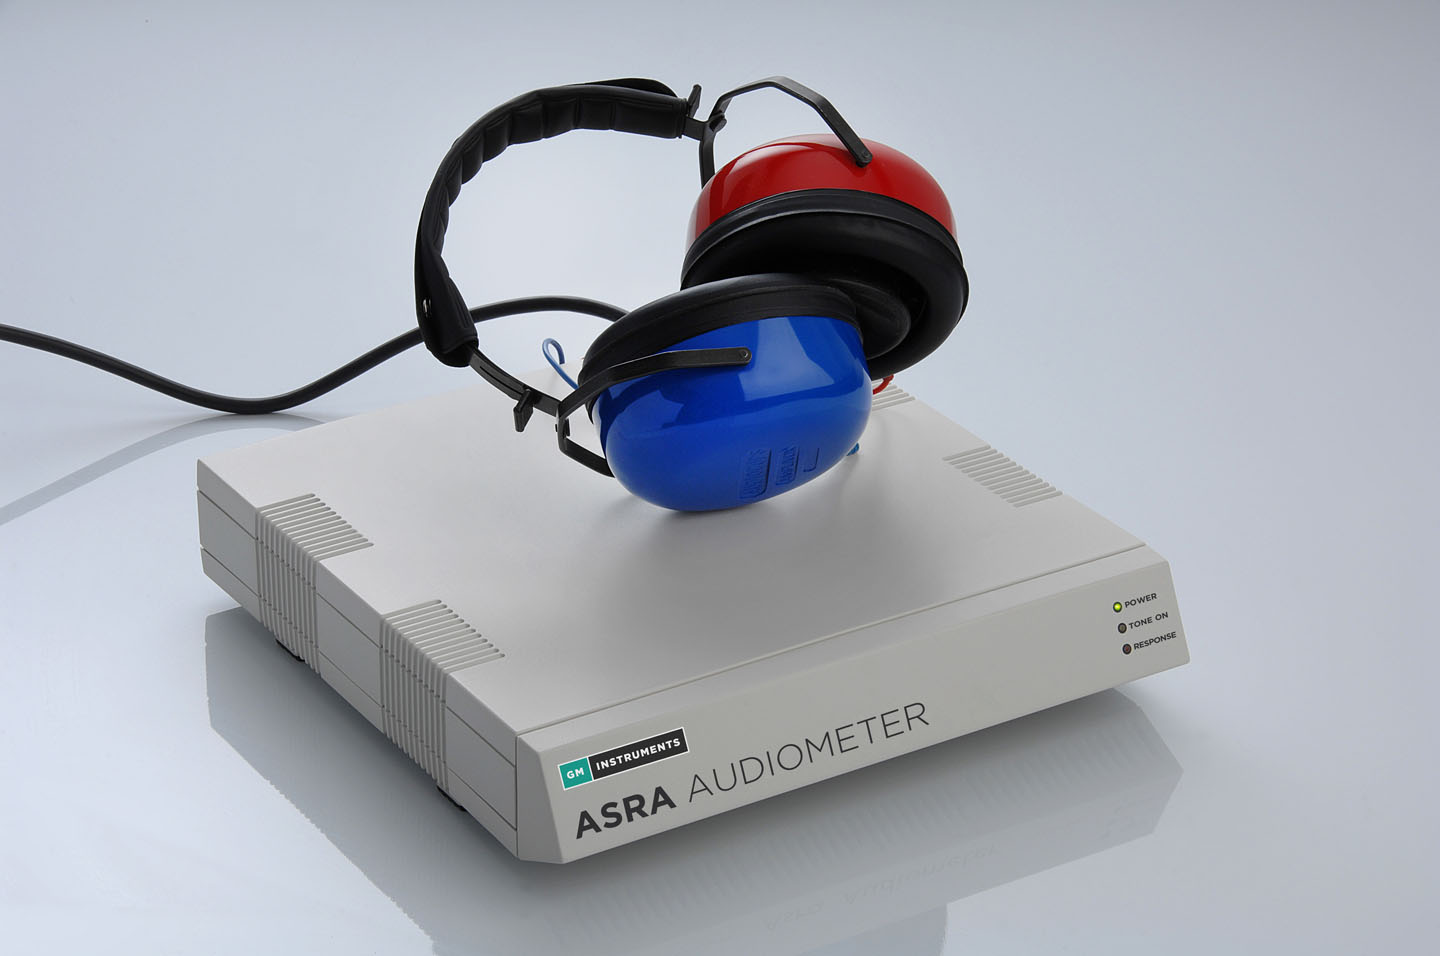 ASRA Audiometer with Headphones